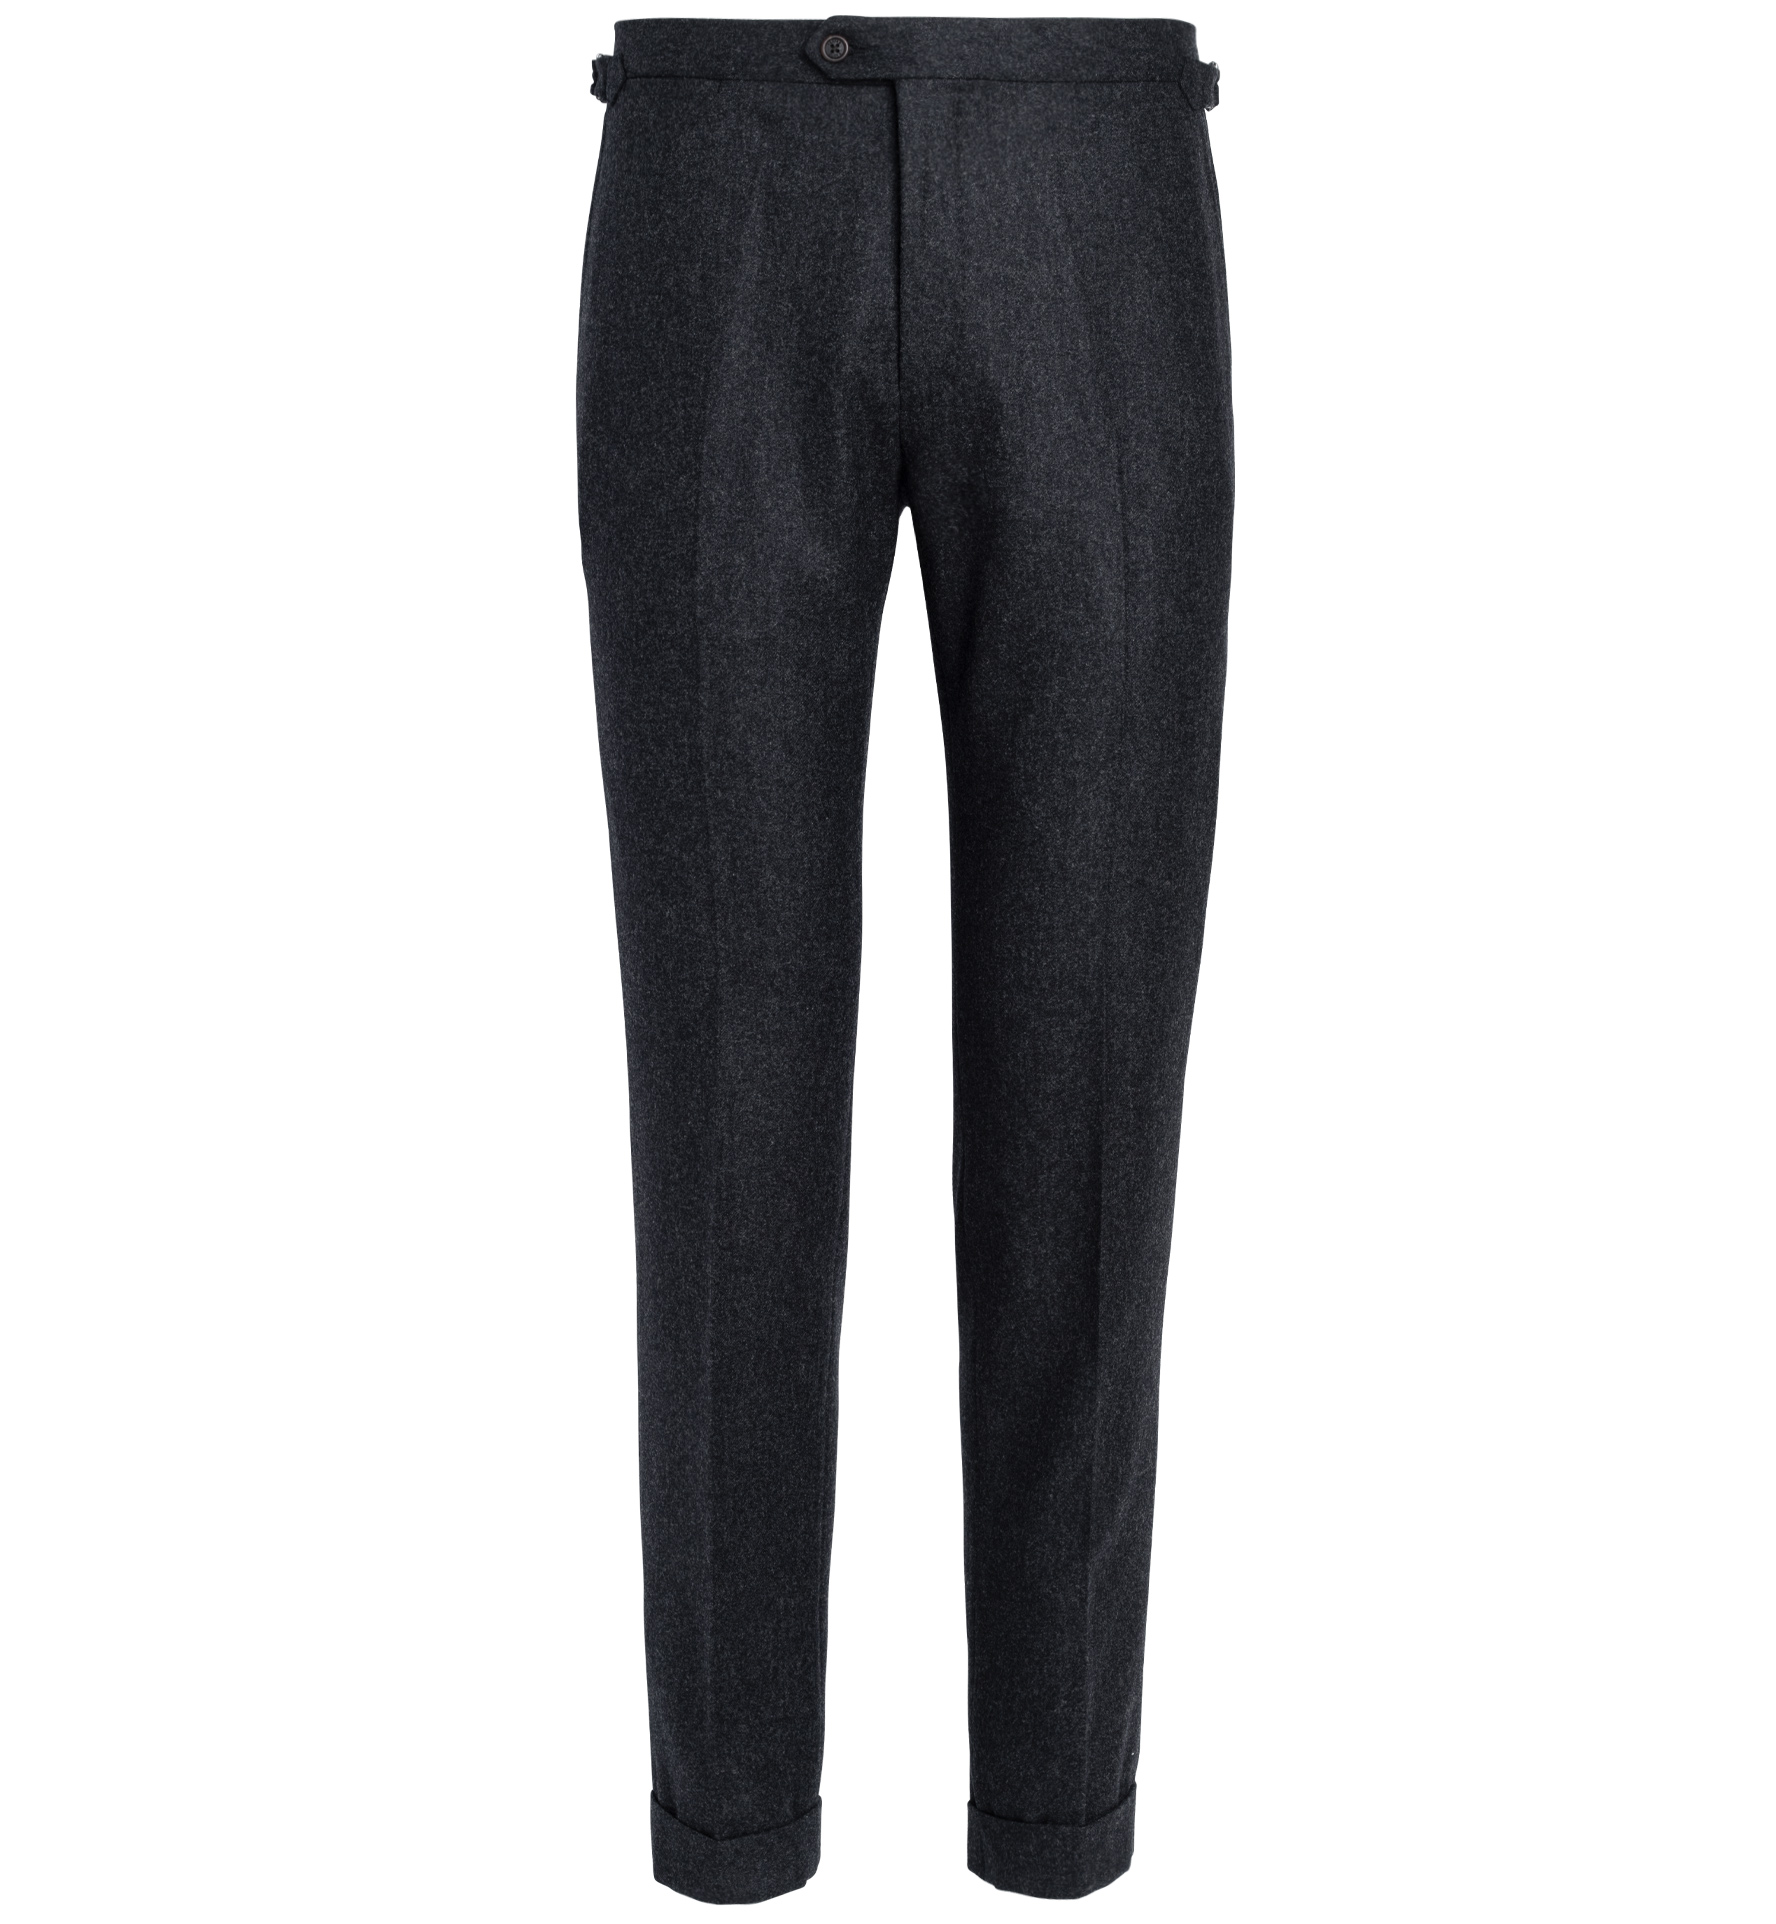 Zoom Image of Allen Charcoal Wool Flannel Trouser